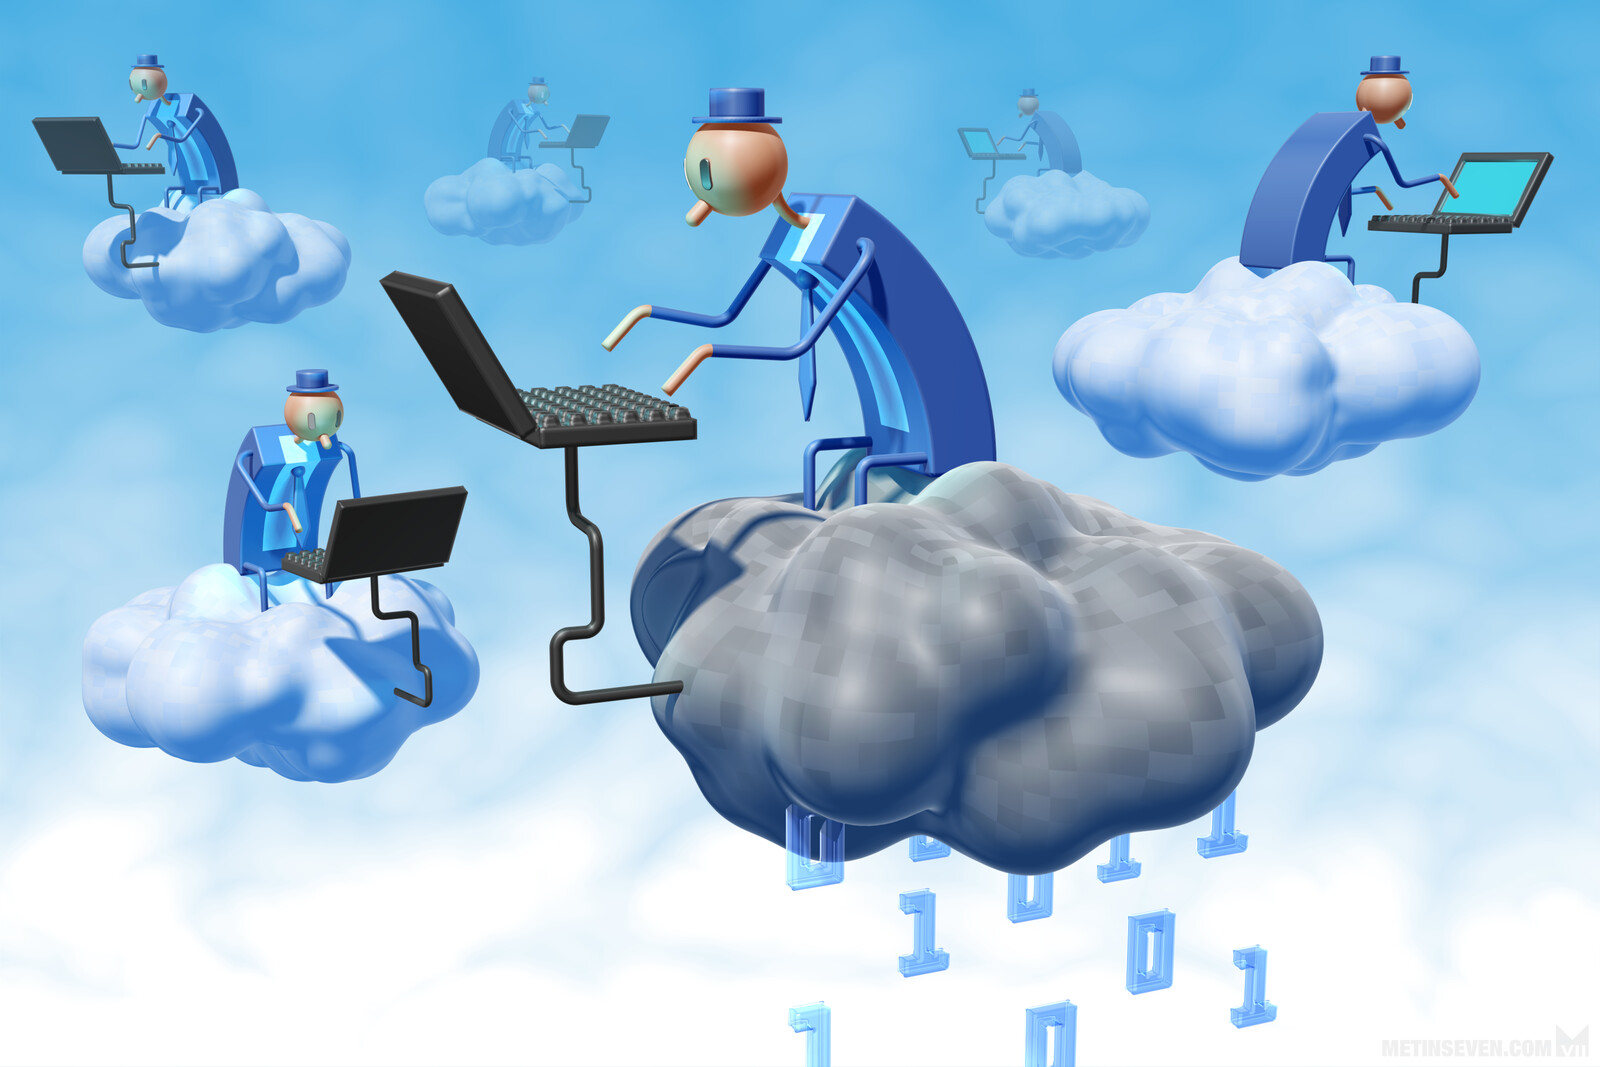 Editorial illustration about cloud computing